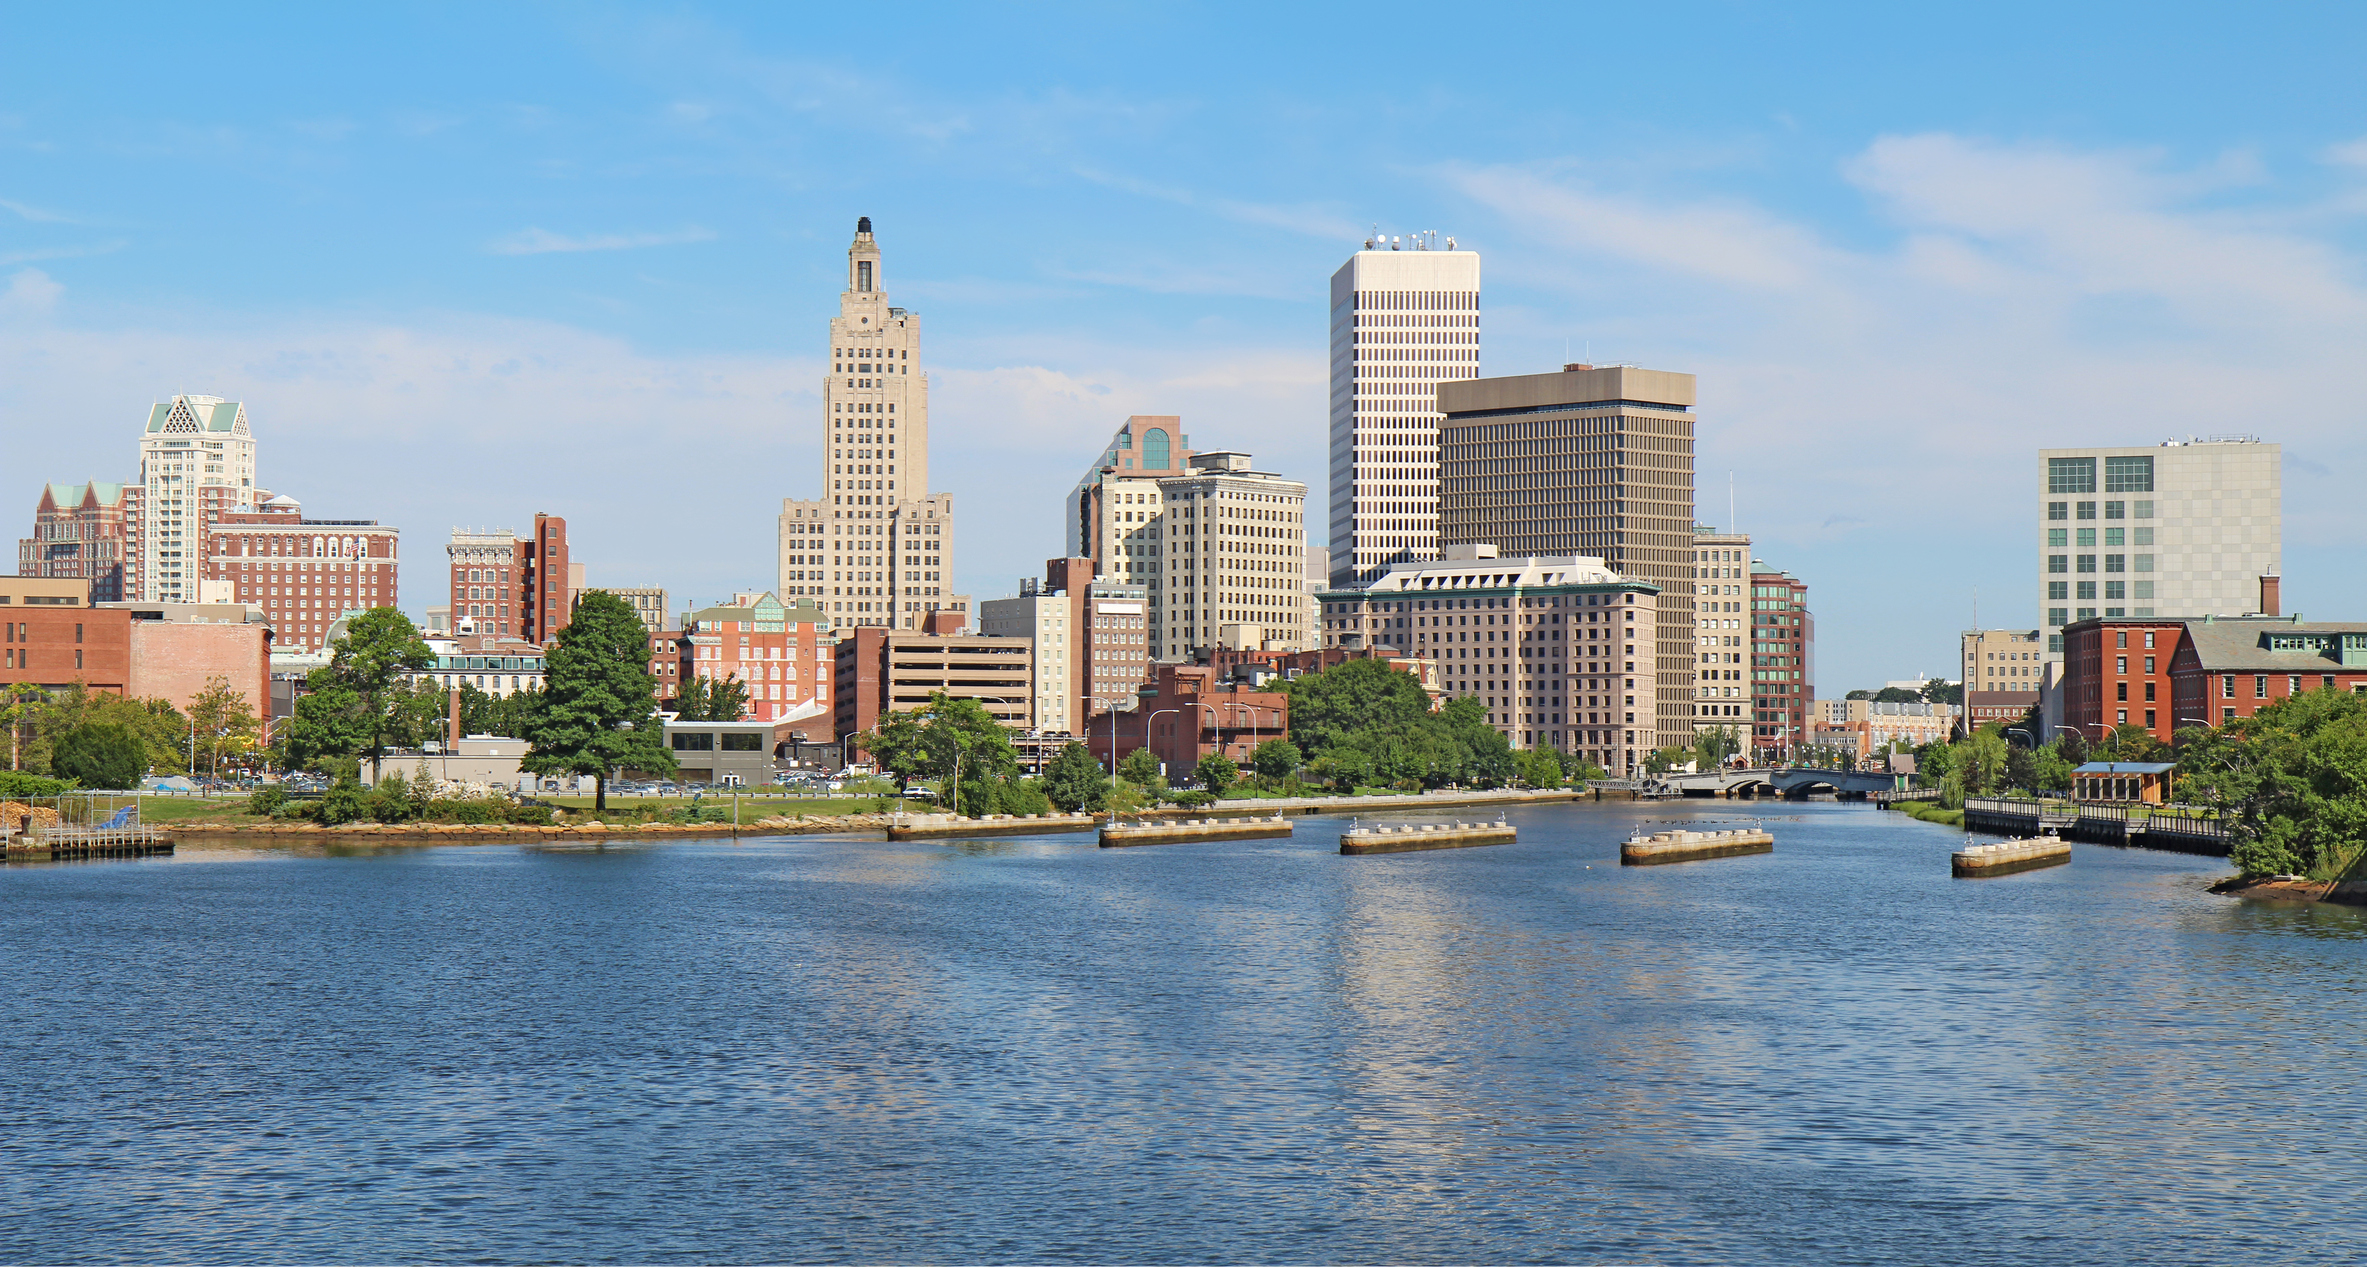 WHAT TO DO IN PVD - FOLLOW THE LINKS BELOW FOR THE BEST OUR CITY HAS TO OFFER